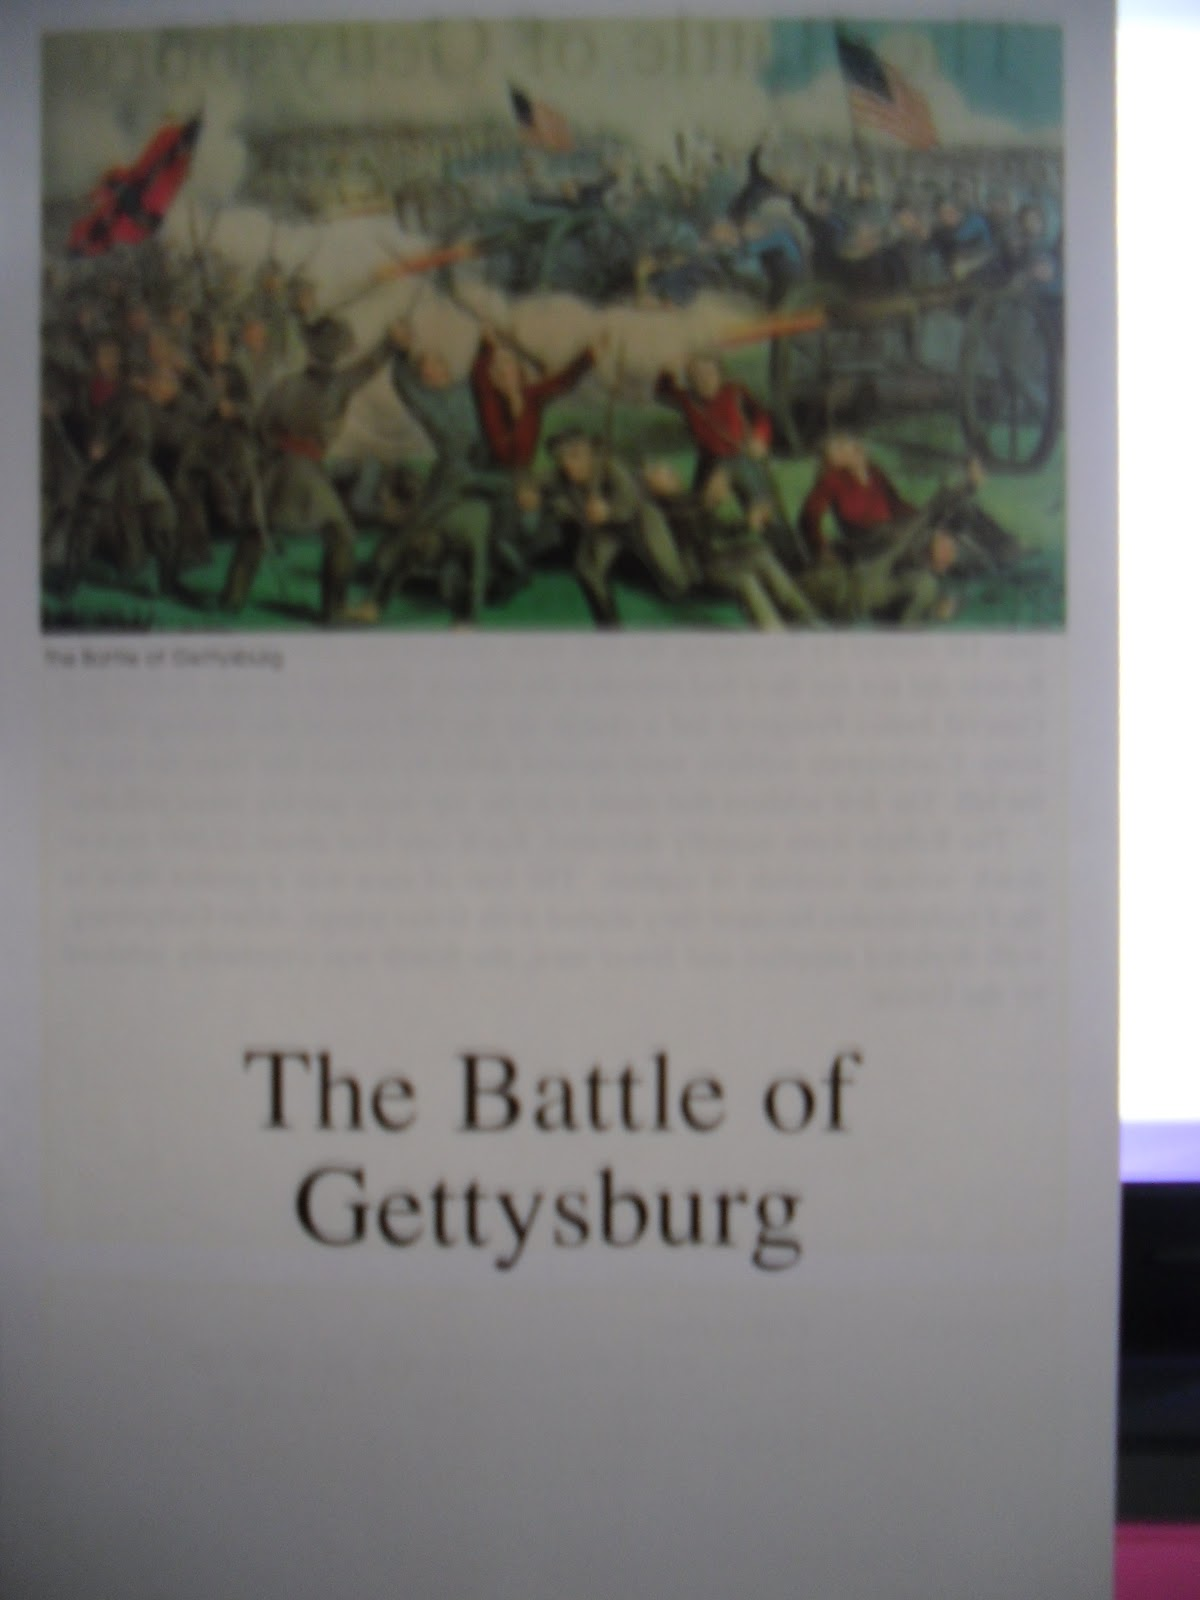 battle of gettysburg essay conclusion Writing an american history essay or research paper and need a sample to follow this essay on the battle of gettysburg will definitely help.